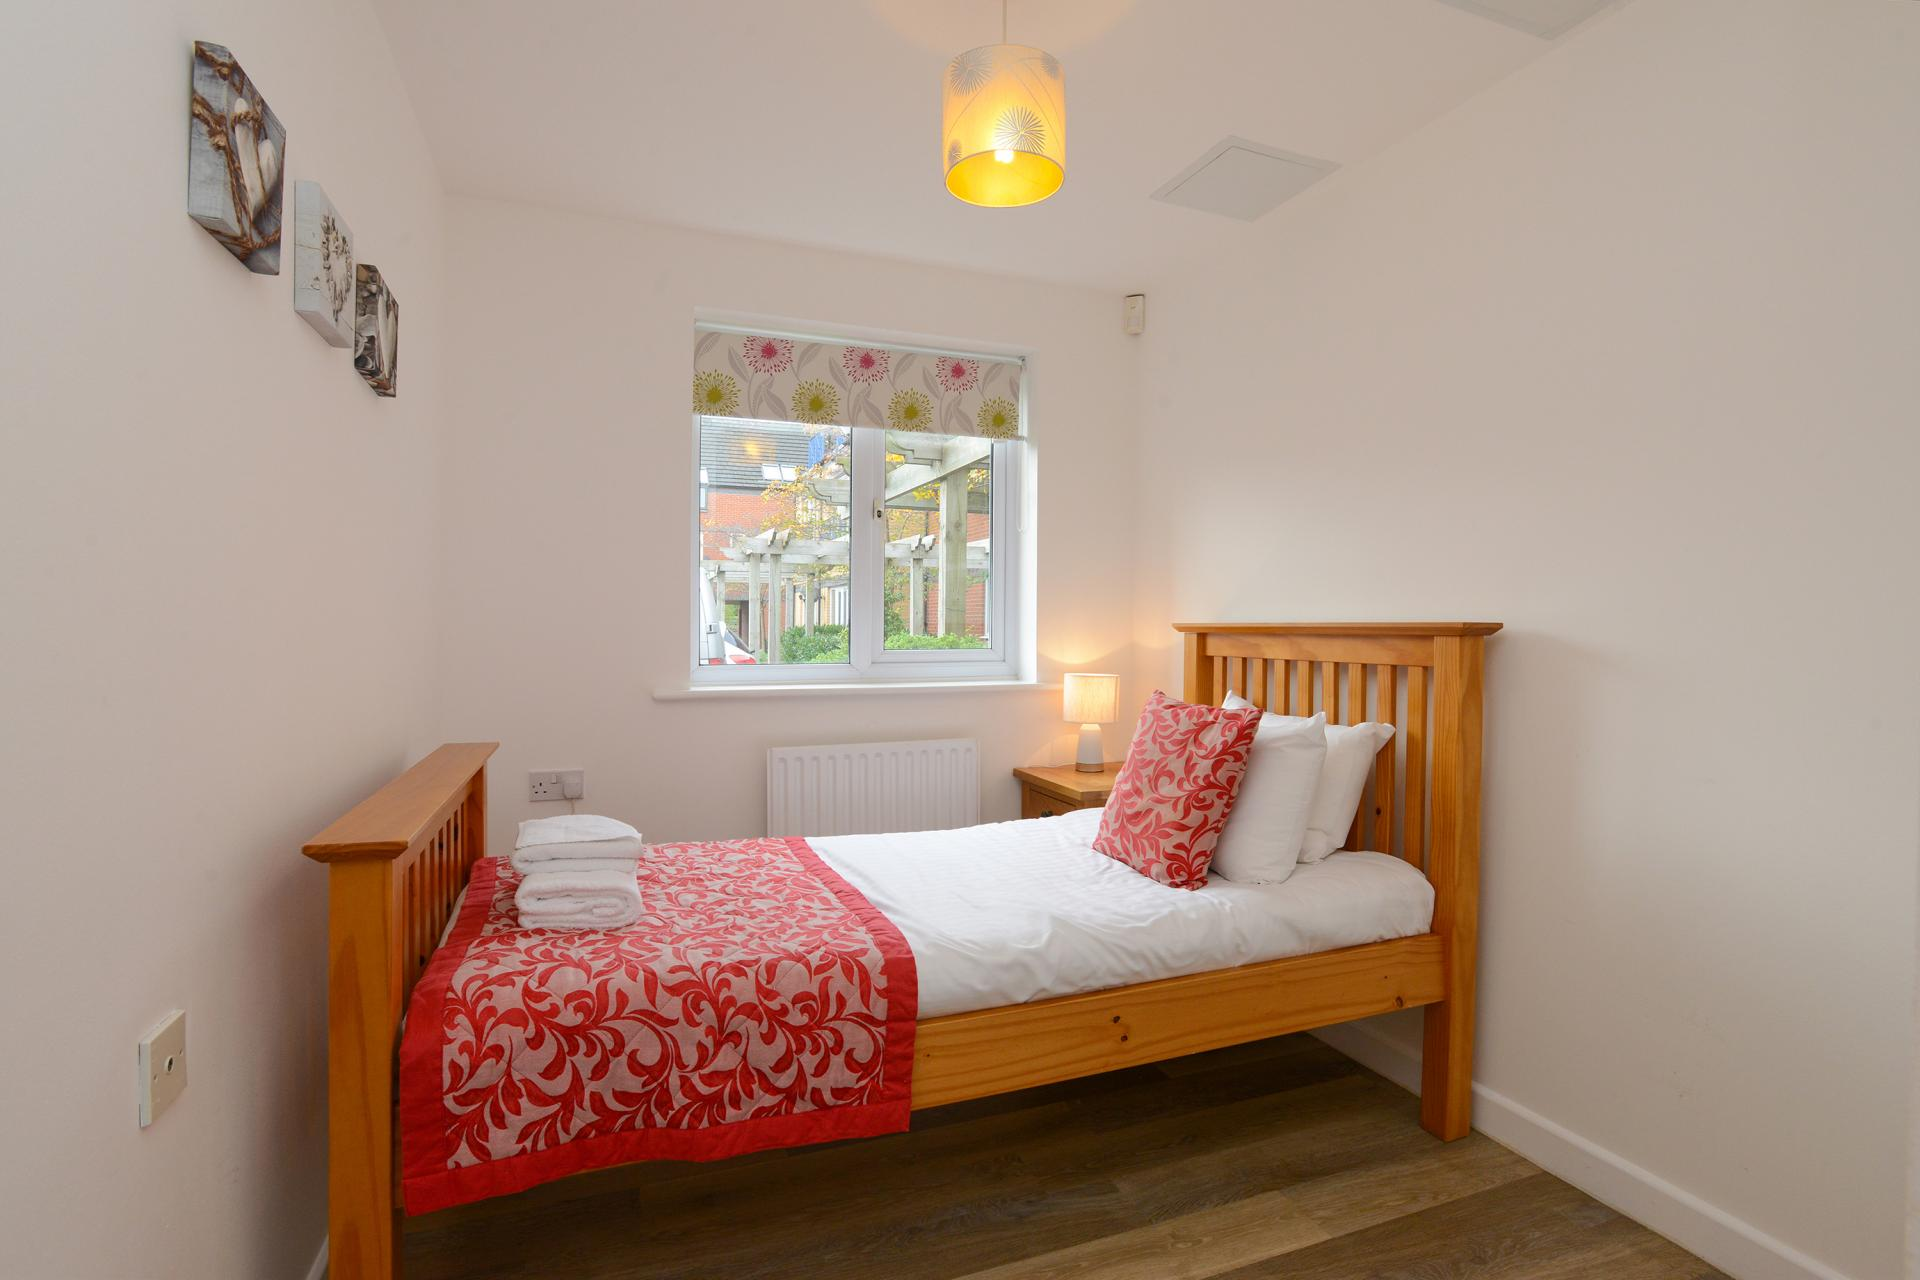 Bed at Edward's Court Apartment, West Bridgford, Nottingham - Citybase Apartments